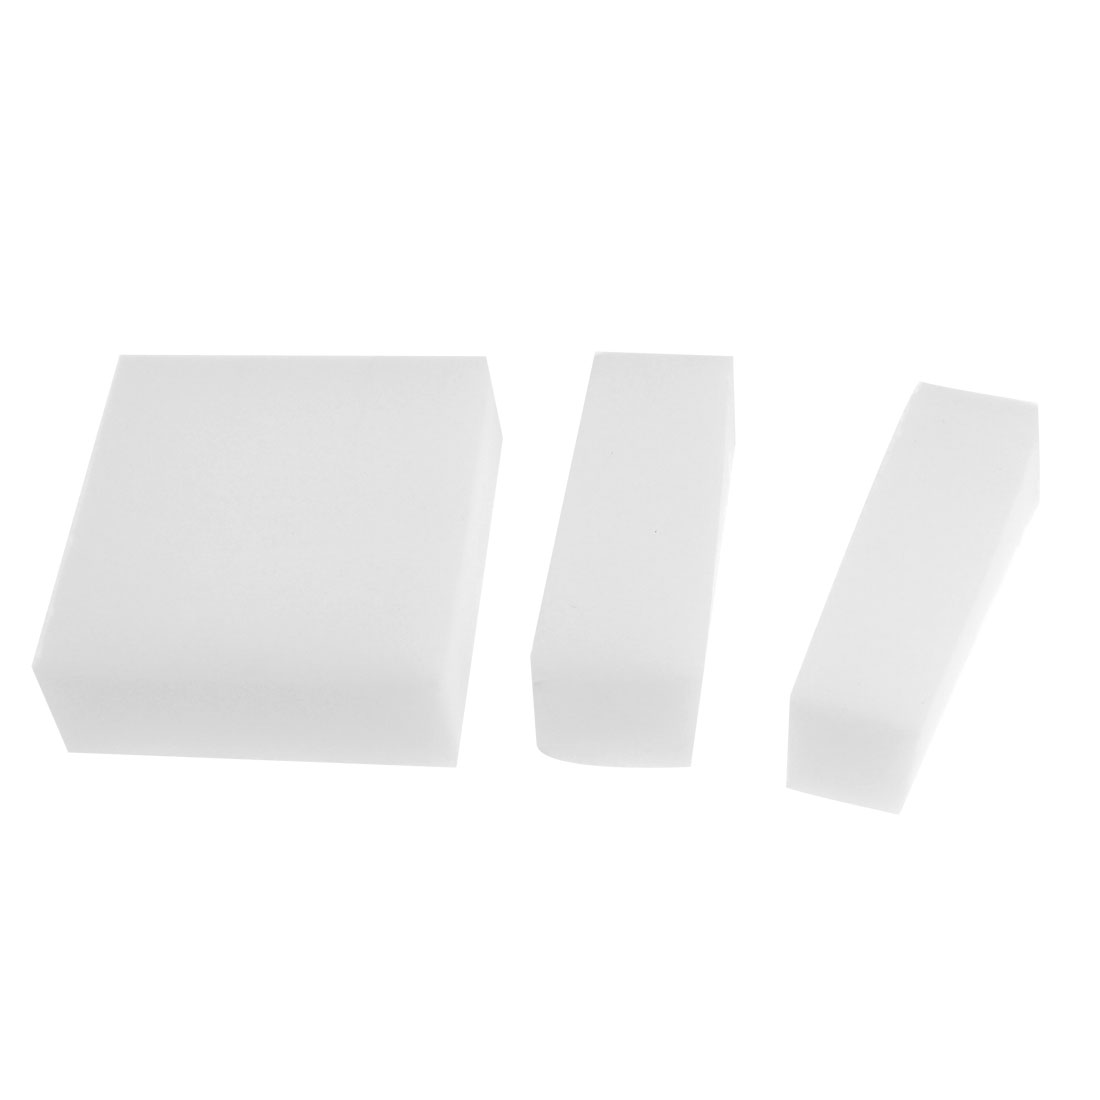 14cm x 9cm x 3cm Rectangular White Cleaning Washing Sponge for Automobile Car